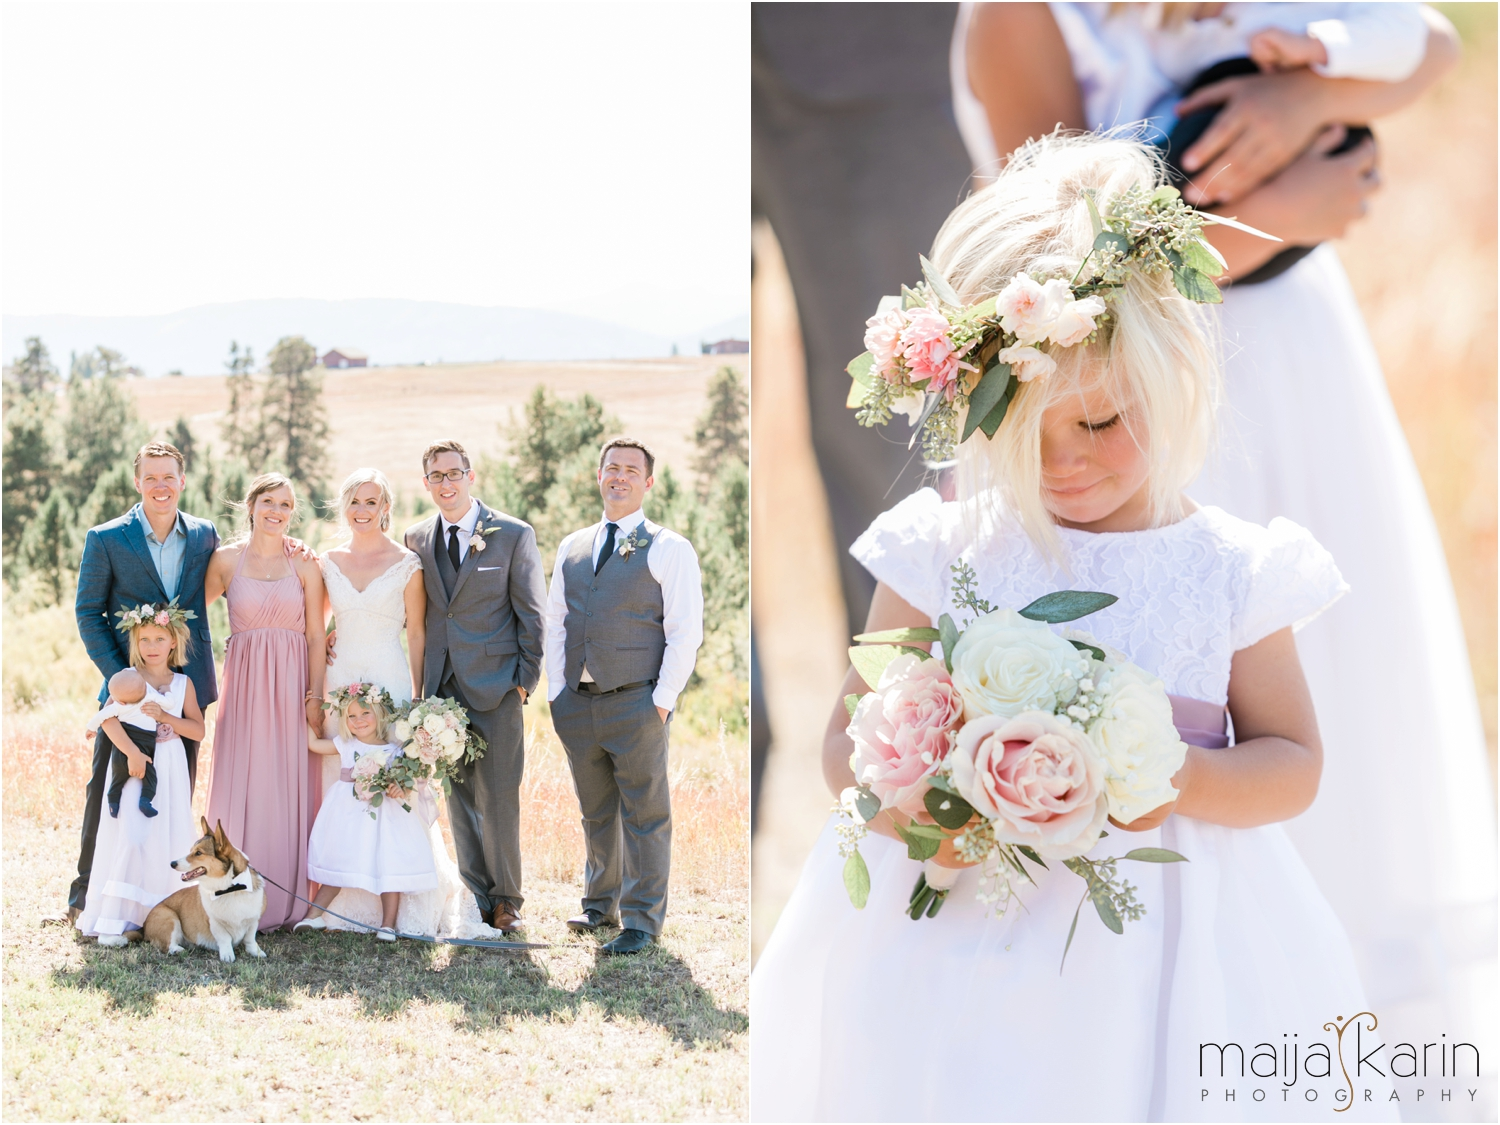 McCall-Idaho-Wedding-Maija-Karin-Photography_0042.jpg